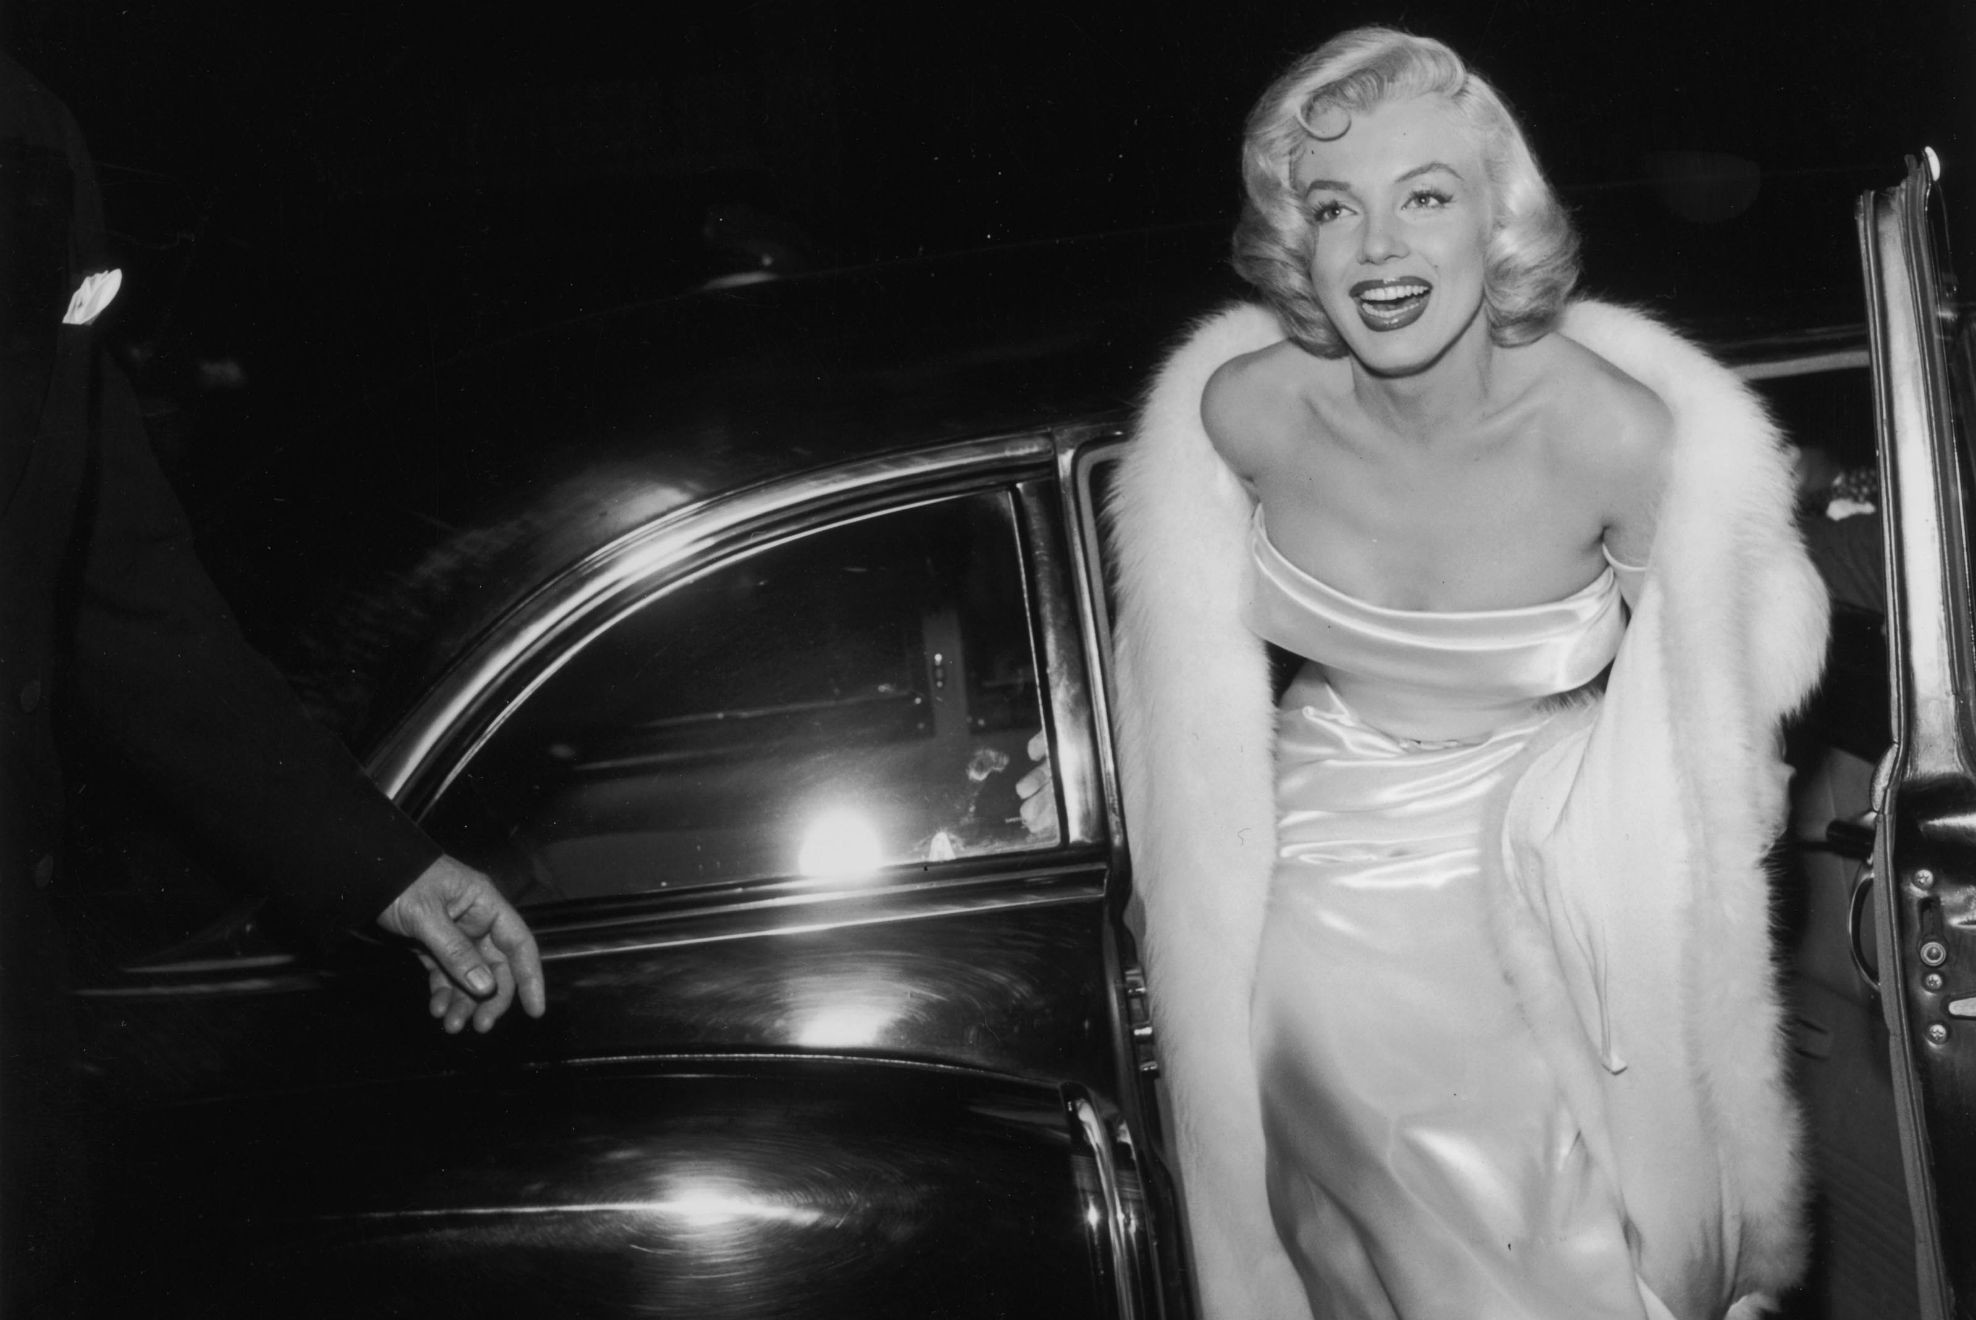 1976x1320 Andy Warhol Marilyn Monroe Wallpaper By Hd Wallpapers Daily .